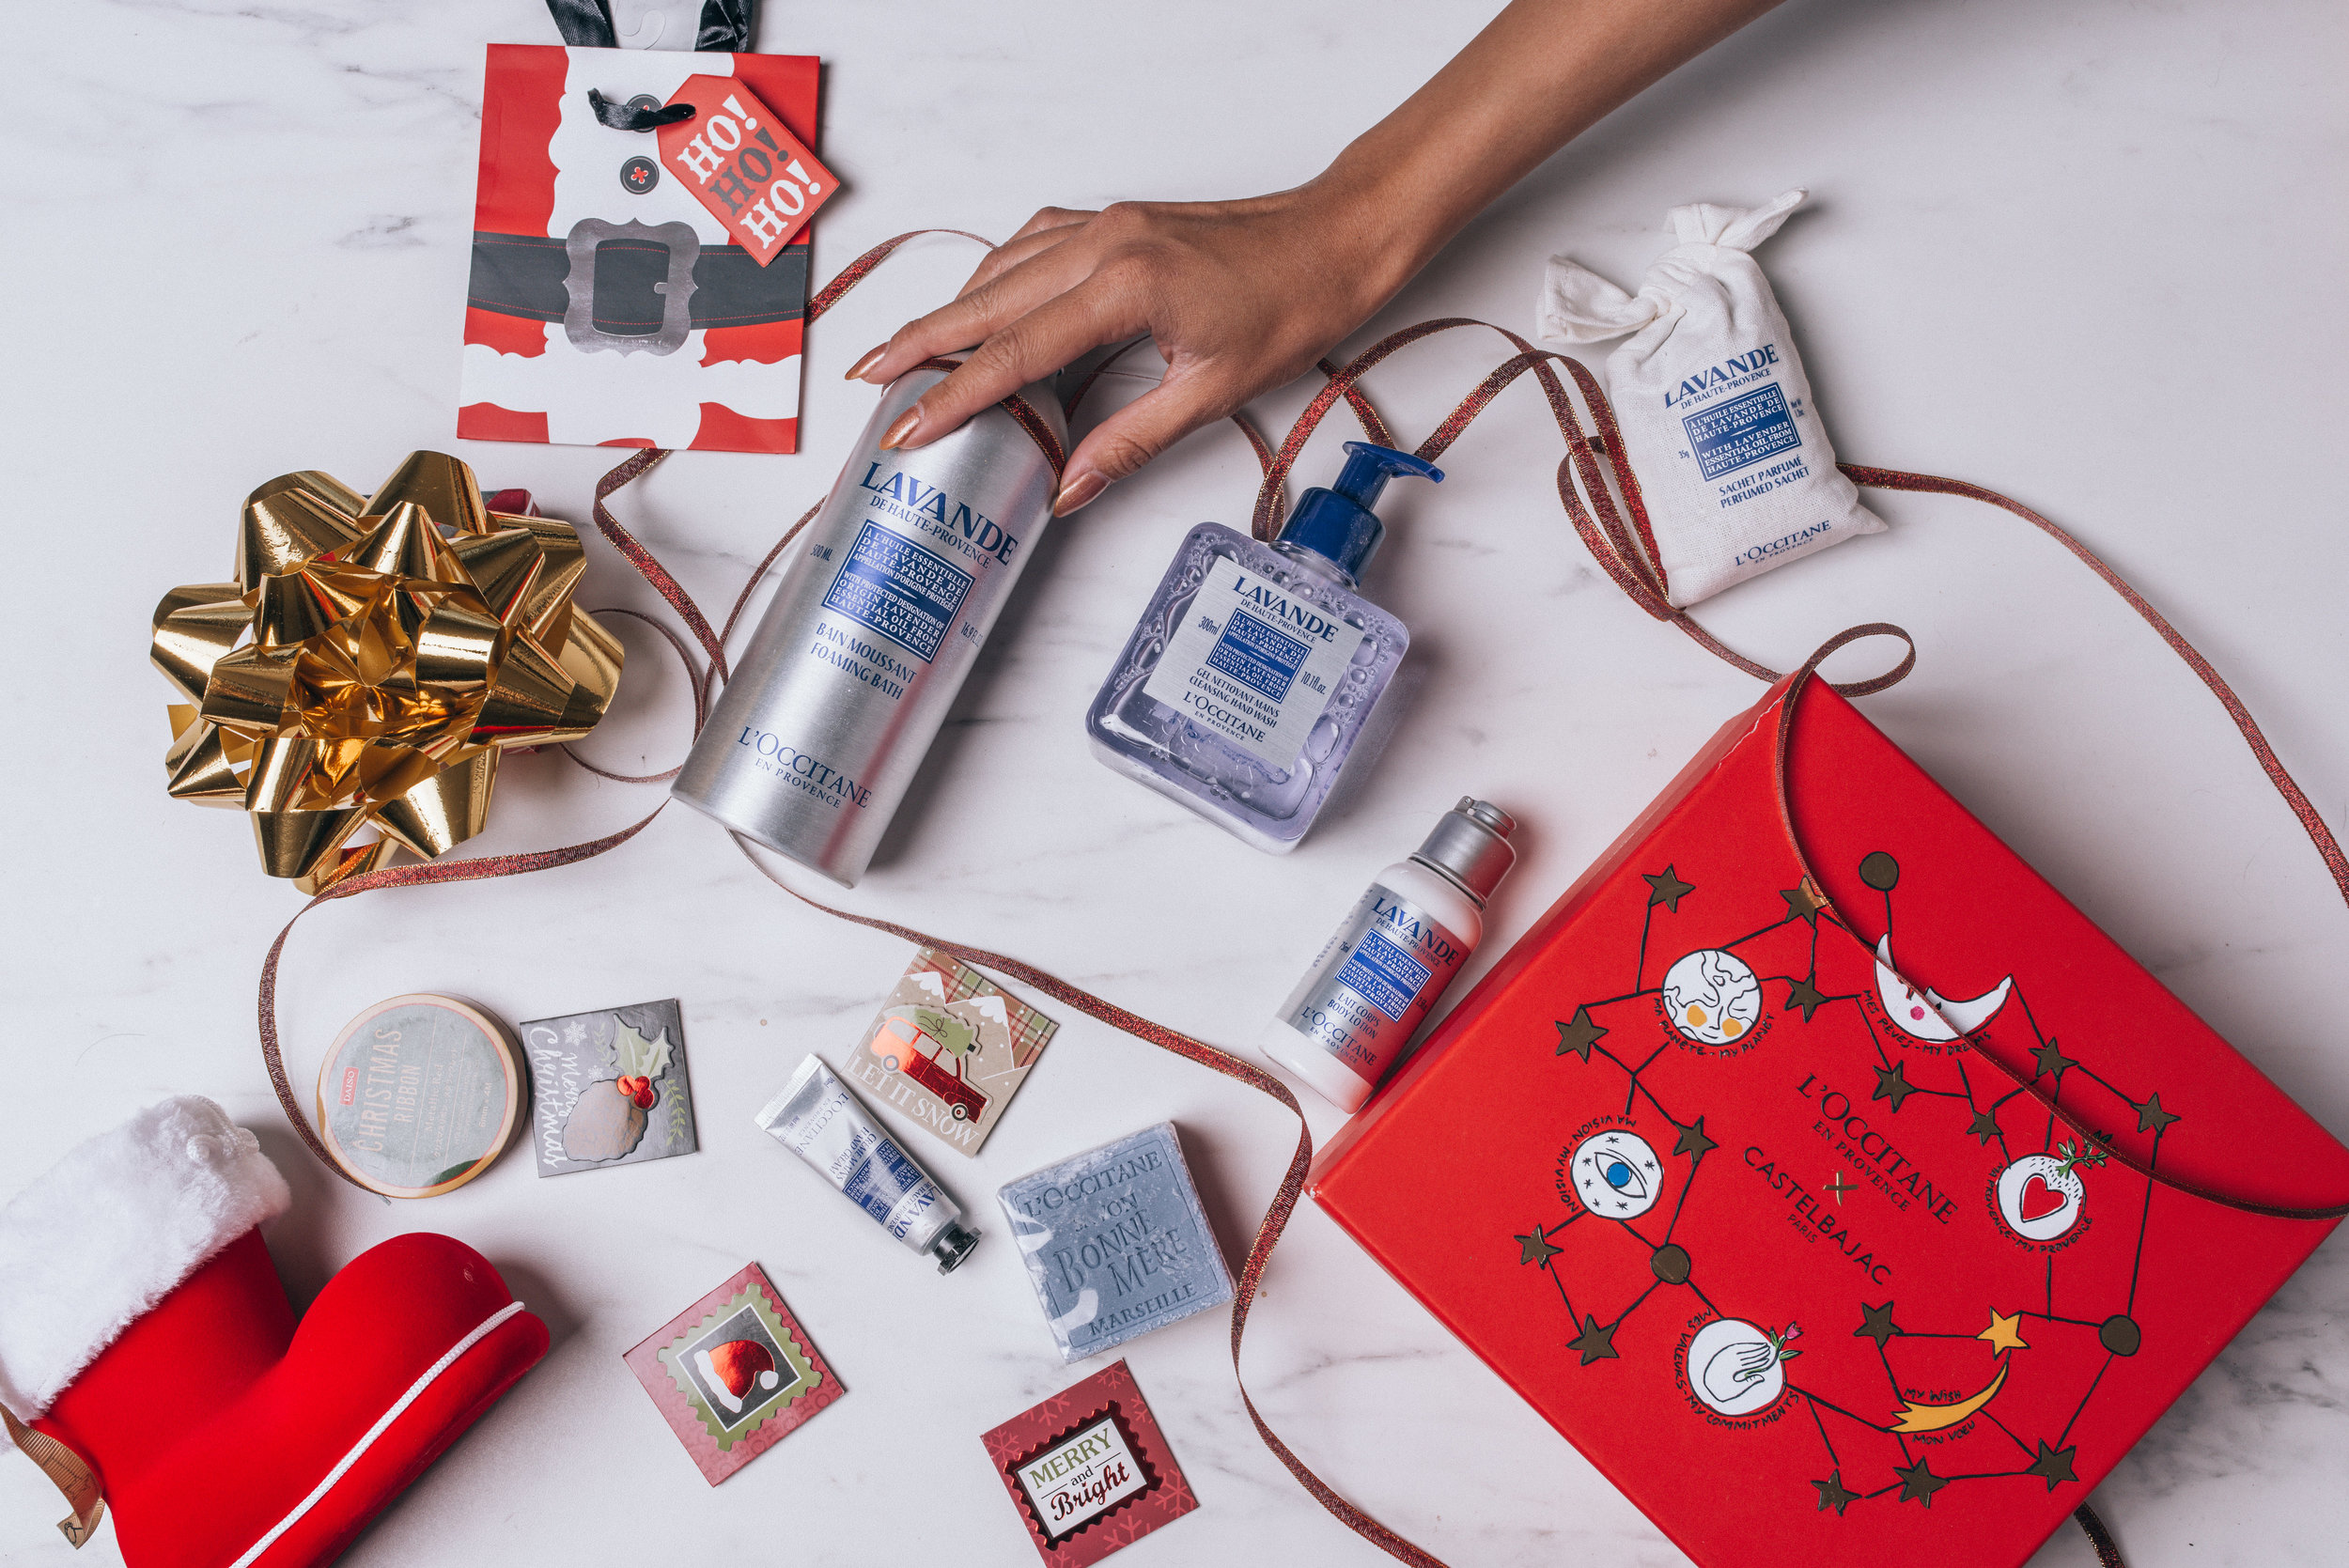 loccitane-gift-guide-by-lisa-linh